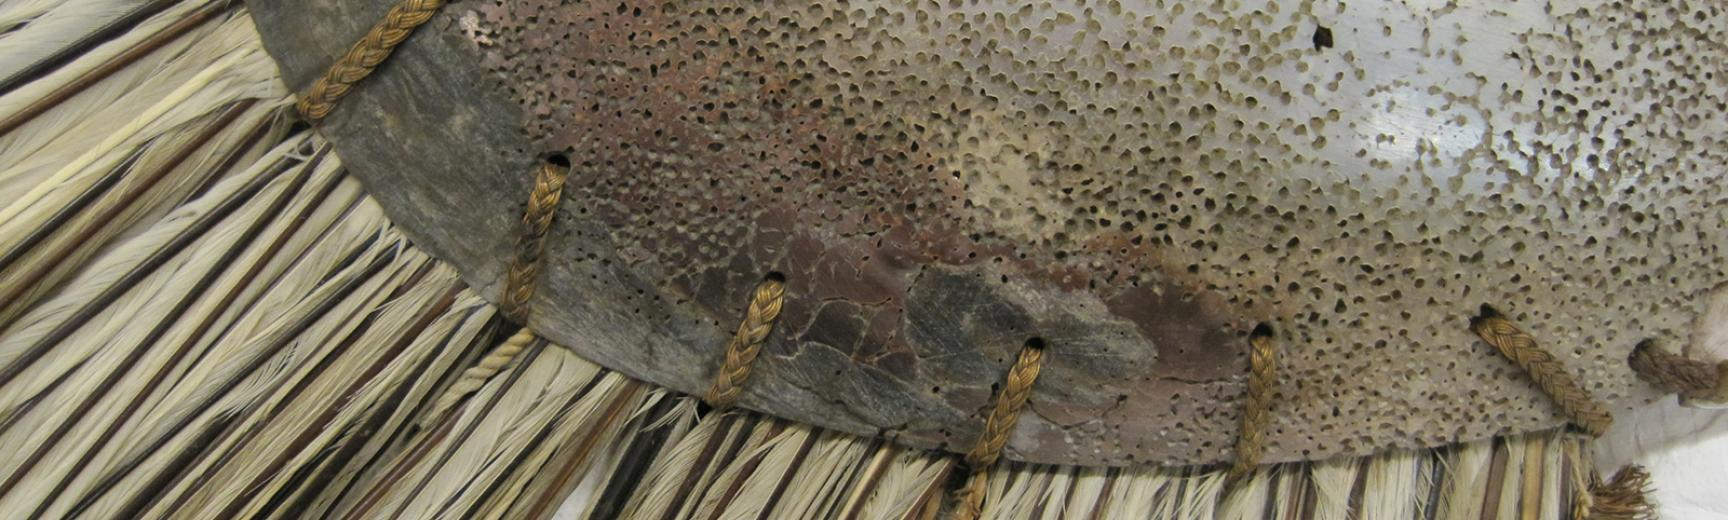 Detail of pearlshell and tropicbird feathers (1886.1.1673.3.1)